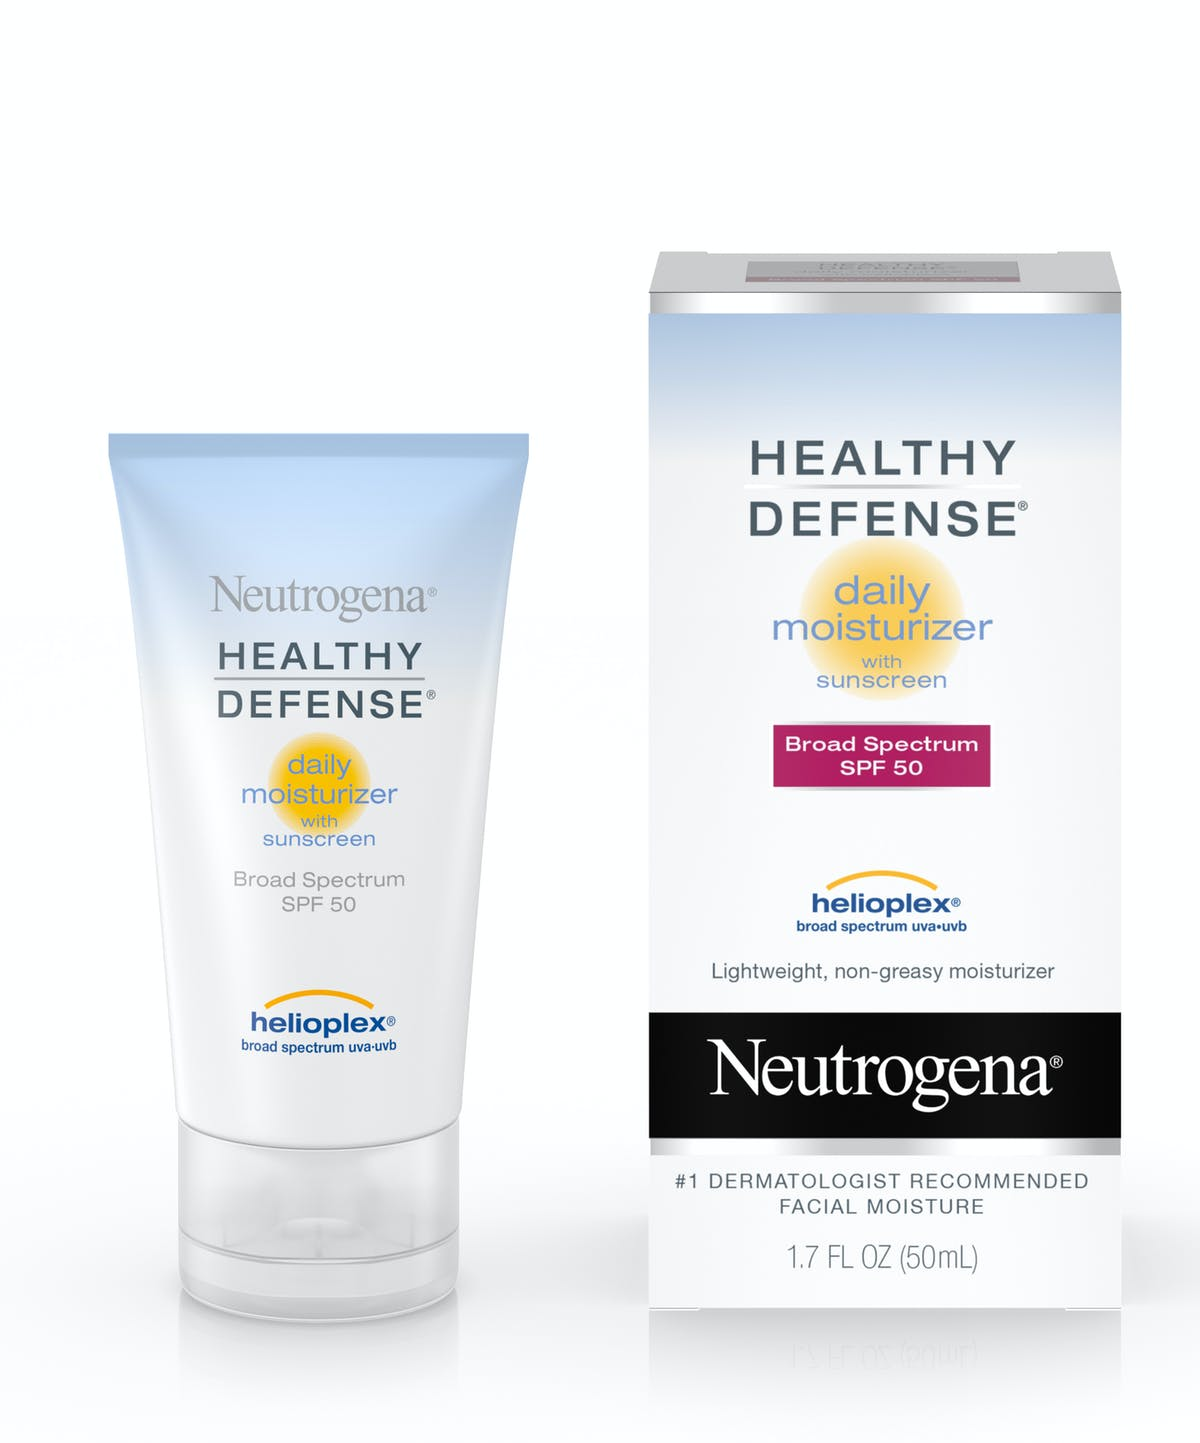 f1a7d406a Healthy Defense ® Daily Moisturizer with Sunscreen Broad Spectrum SPF 50